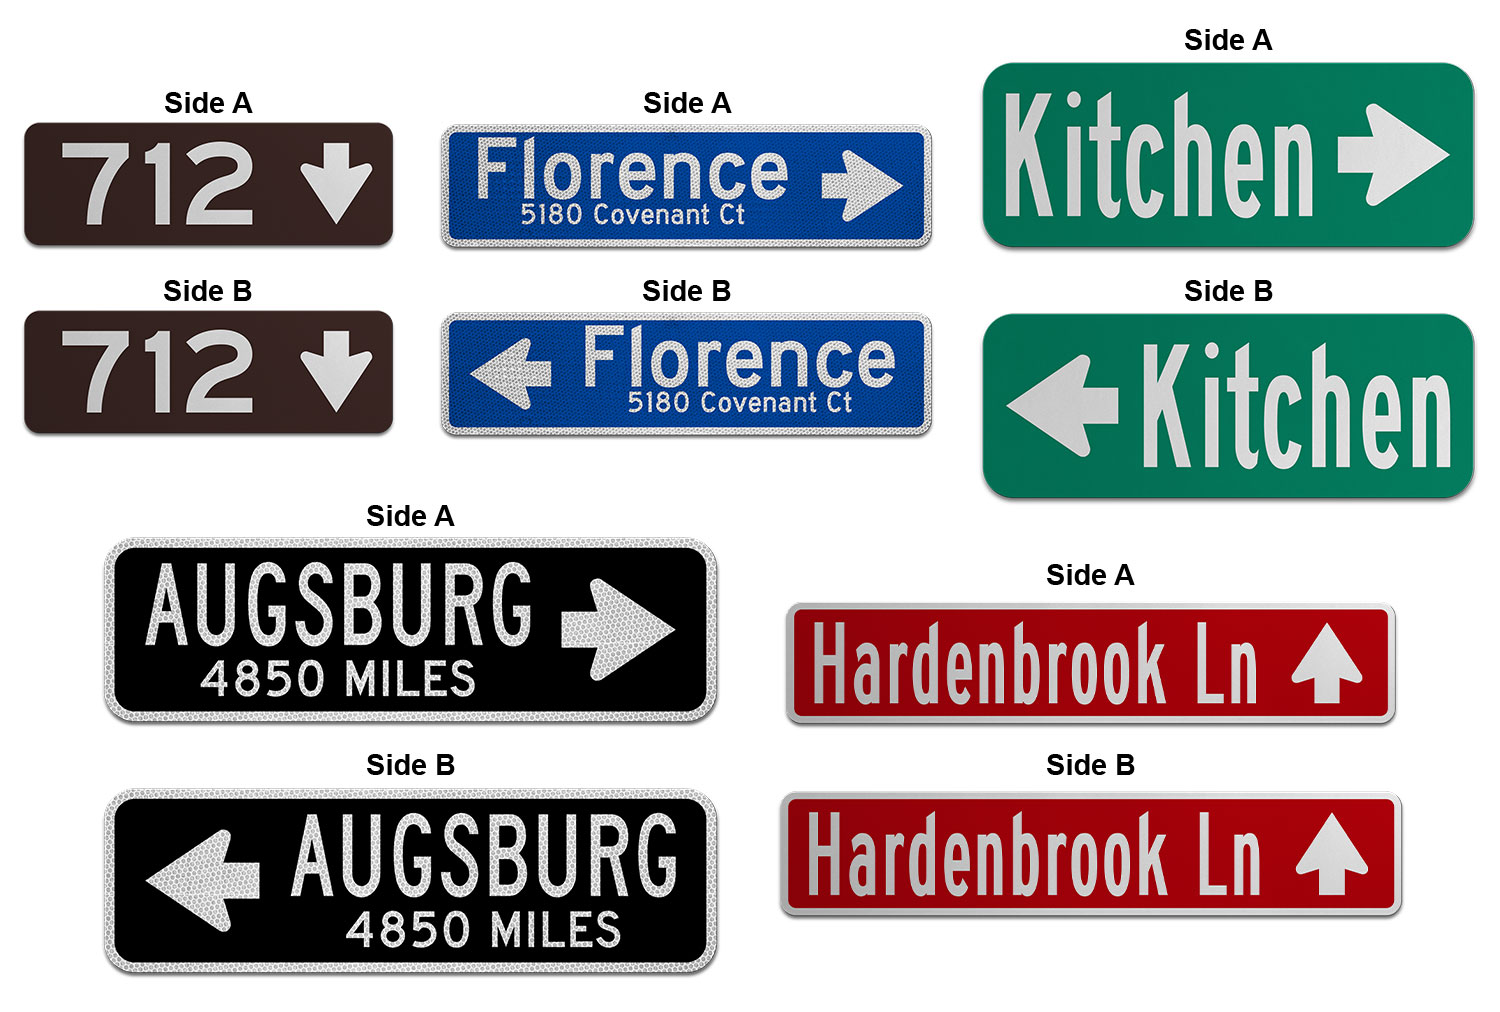 Samples of Printed Flat Blade Signs with Images and Street Numbers